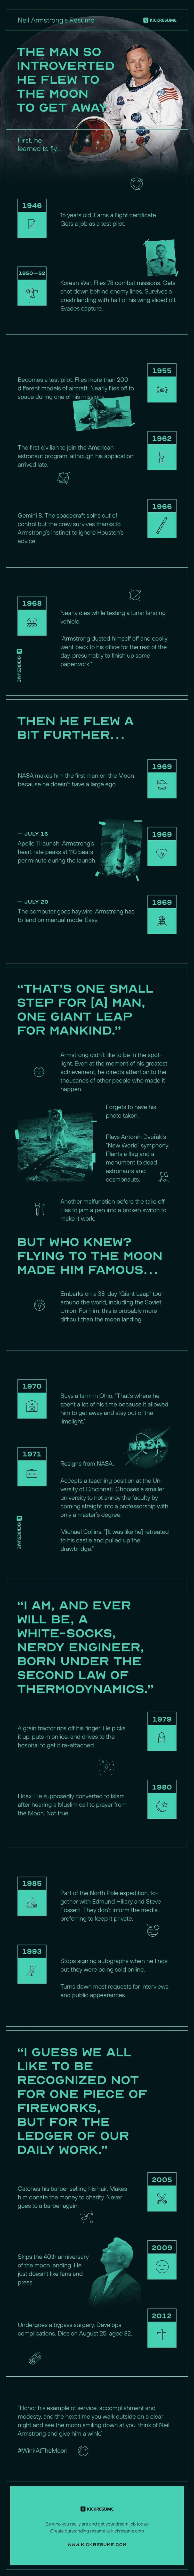 Neil Armstrong's Resume: the Man So Introverted He Flew to the Moon to Get Away #infographic